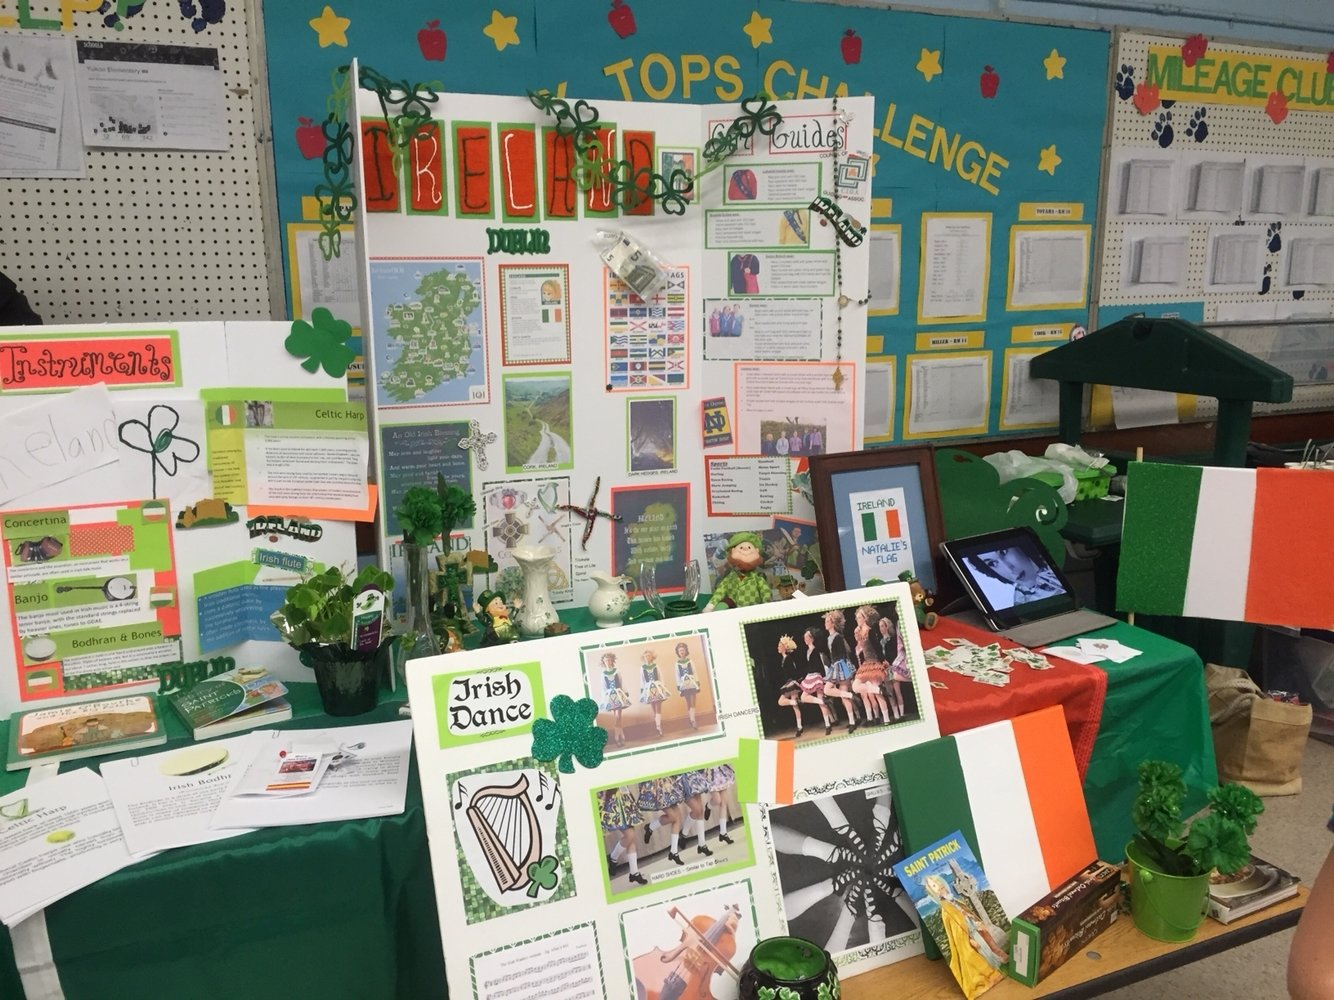 10 Attractive Girl Scout Thinking Day Ideas girl scouts world thinking day ireland instruments board irish